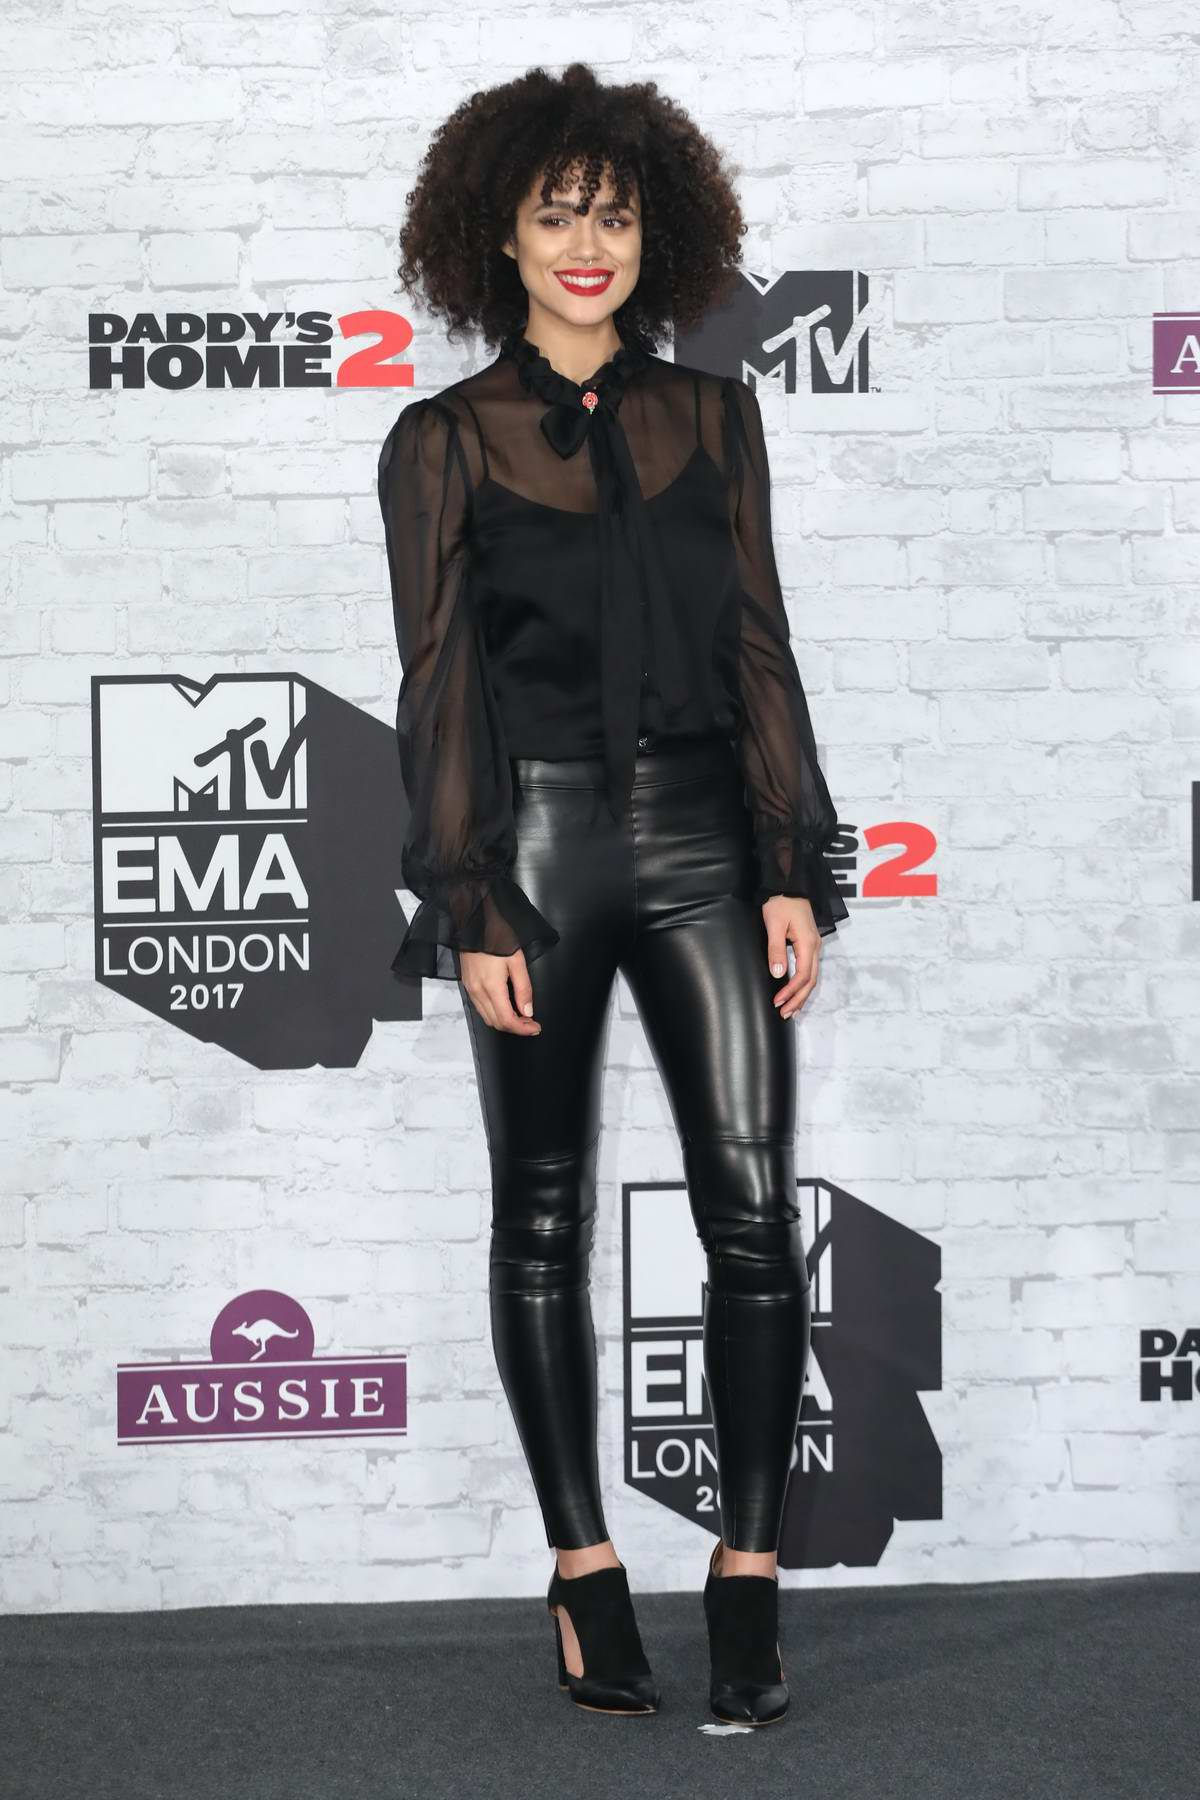 Nathalie Emmanuel at the 24th MTV Europe Music Awards held at SSE Arena Wembley in London